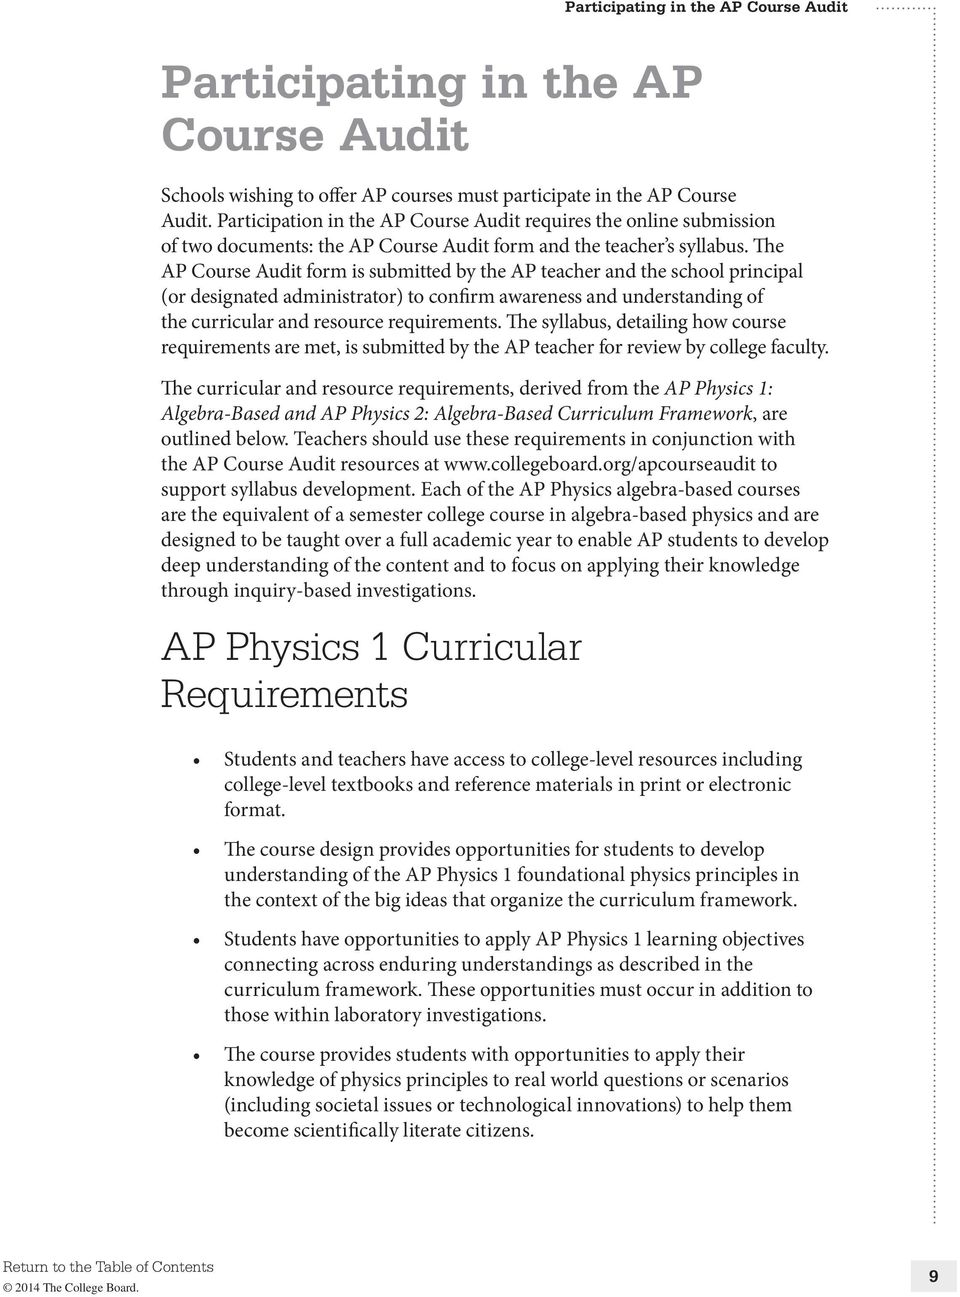 AP PHYSICS 1: ALGEBRA-BASED AND AP PHYSICS 2: ALGEBRA-BASED